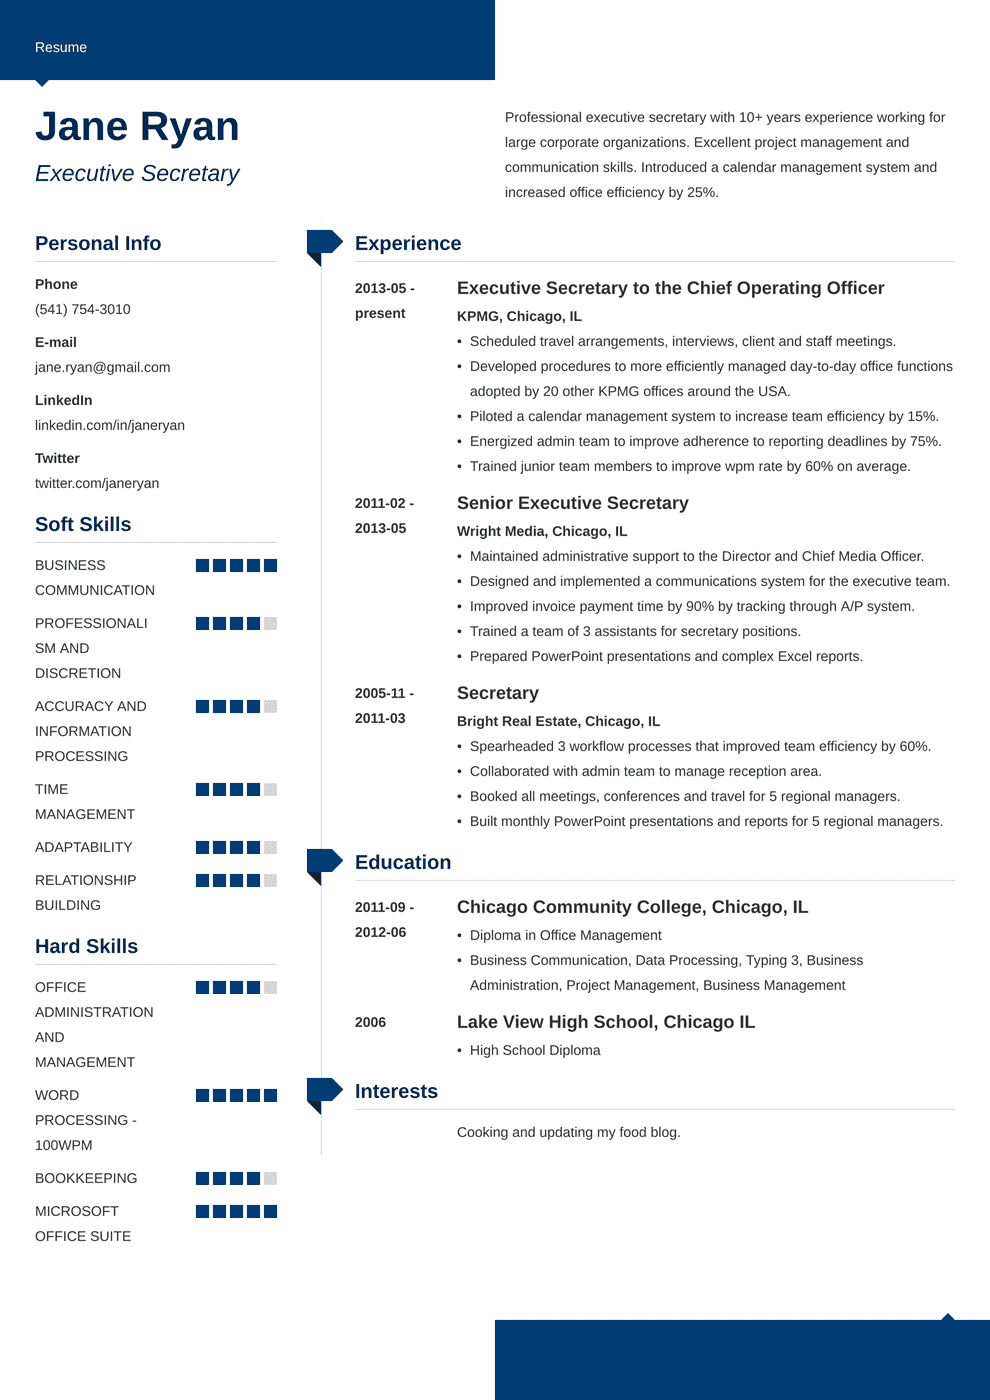 Secretary Resume: Sample & Complete Guide [+20 Examples]